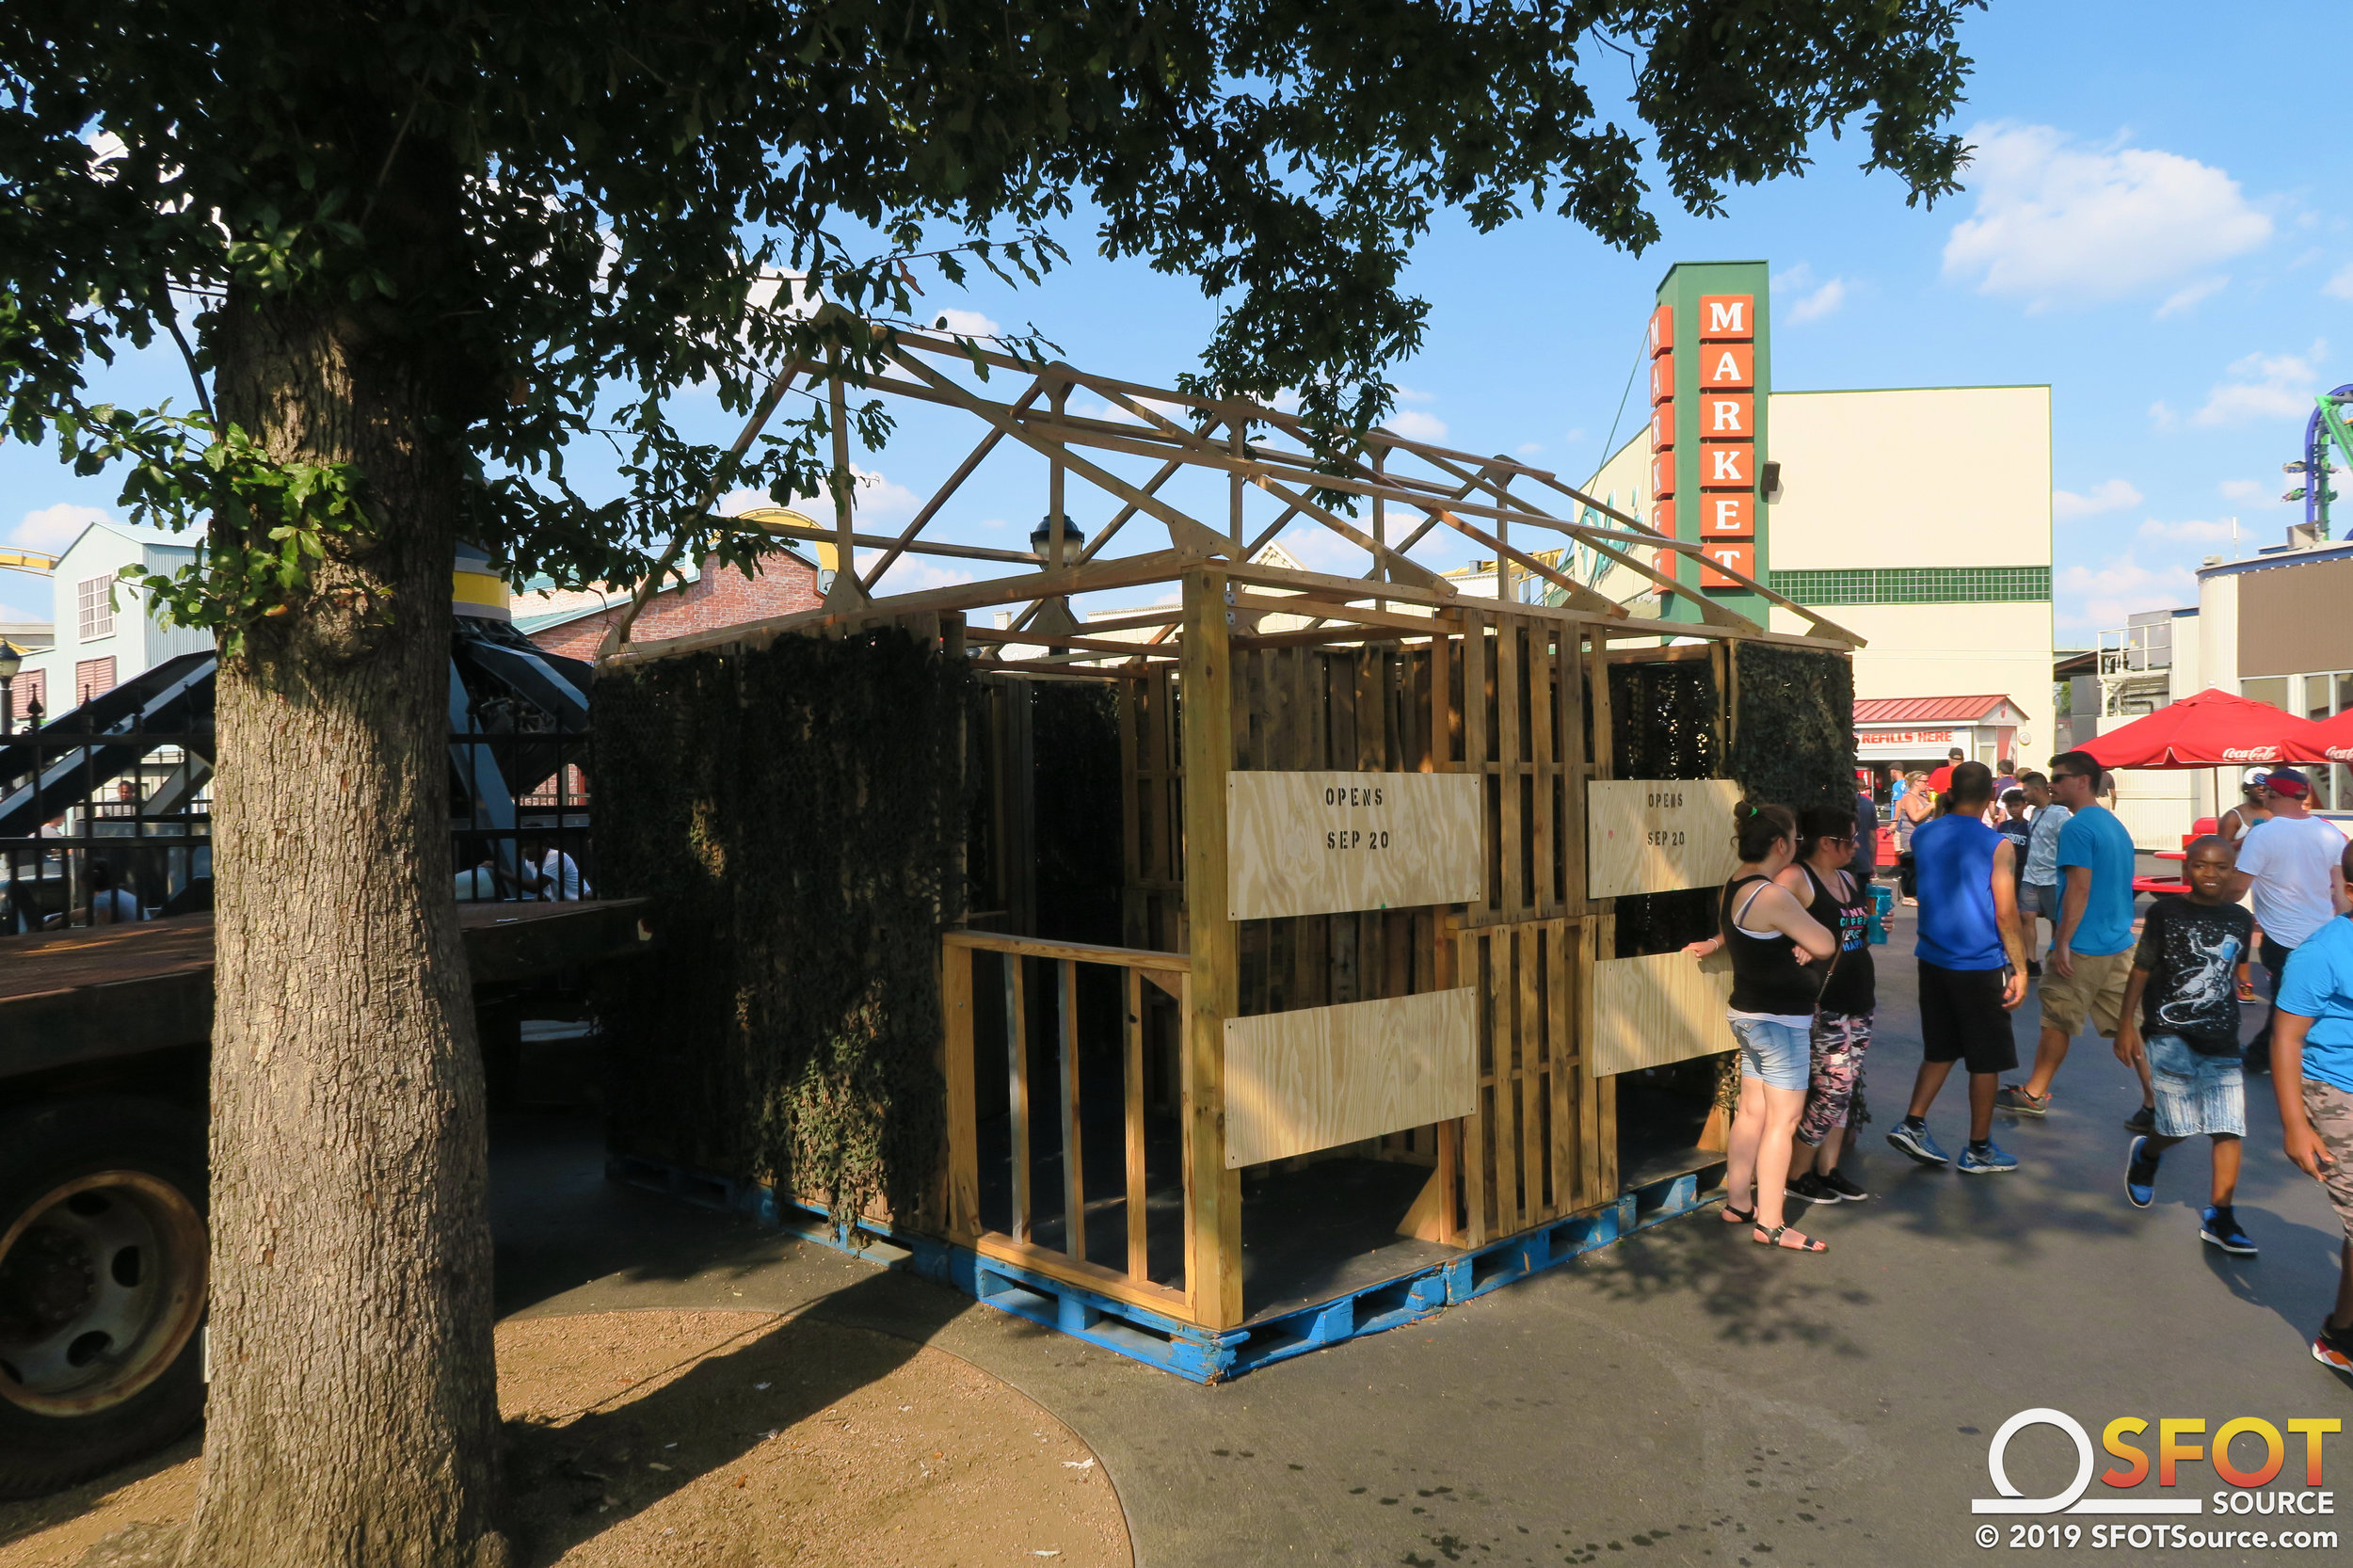 A new piece has been built in the Anarchy Unleashed scare zone. It looks to be an interactive walk-through structure.